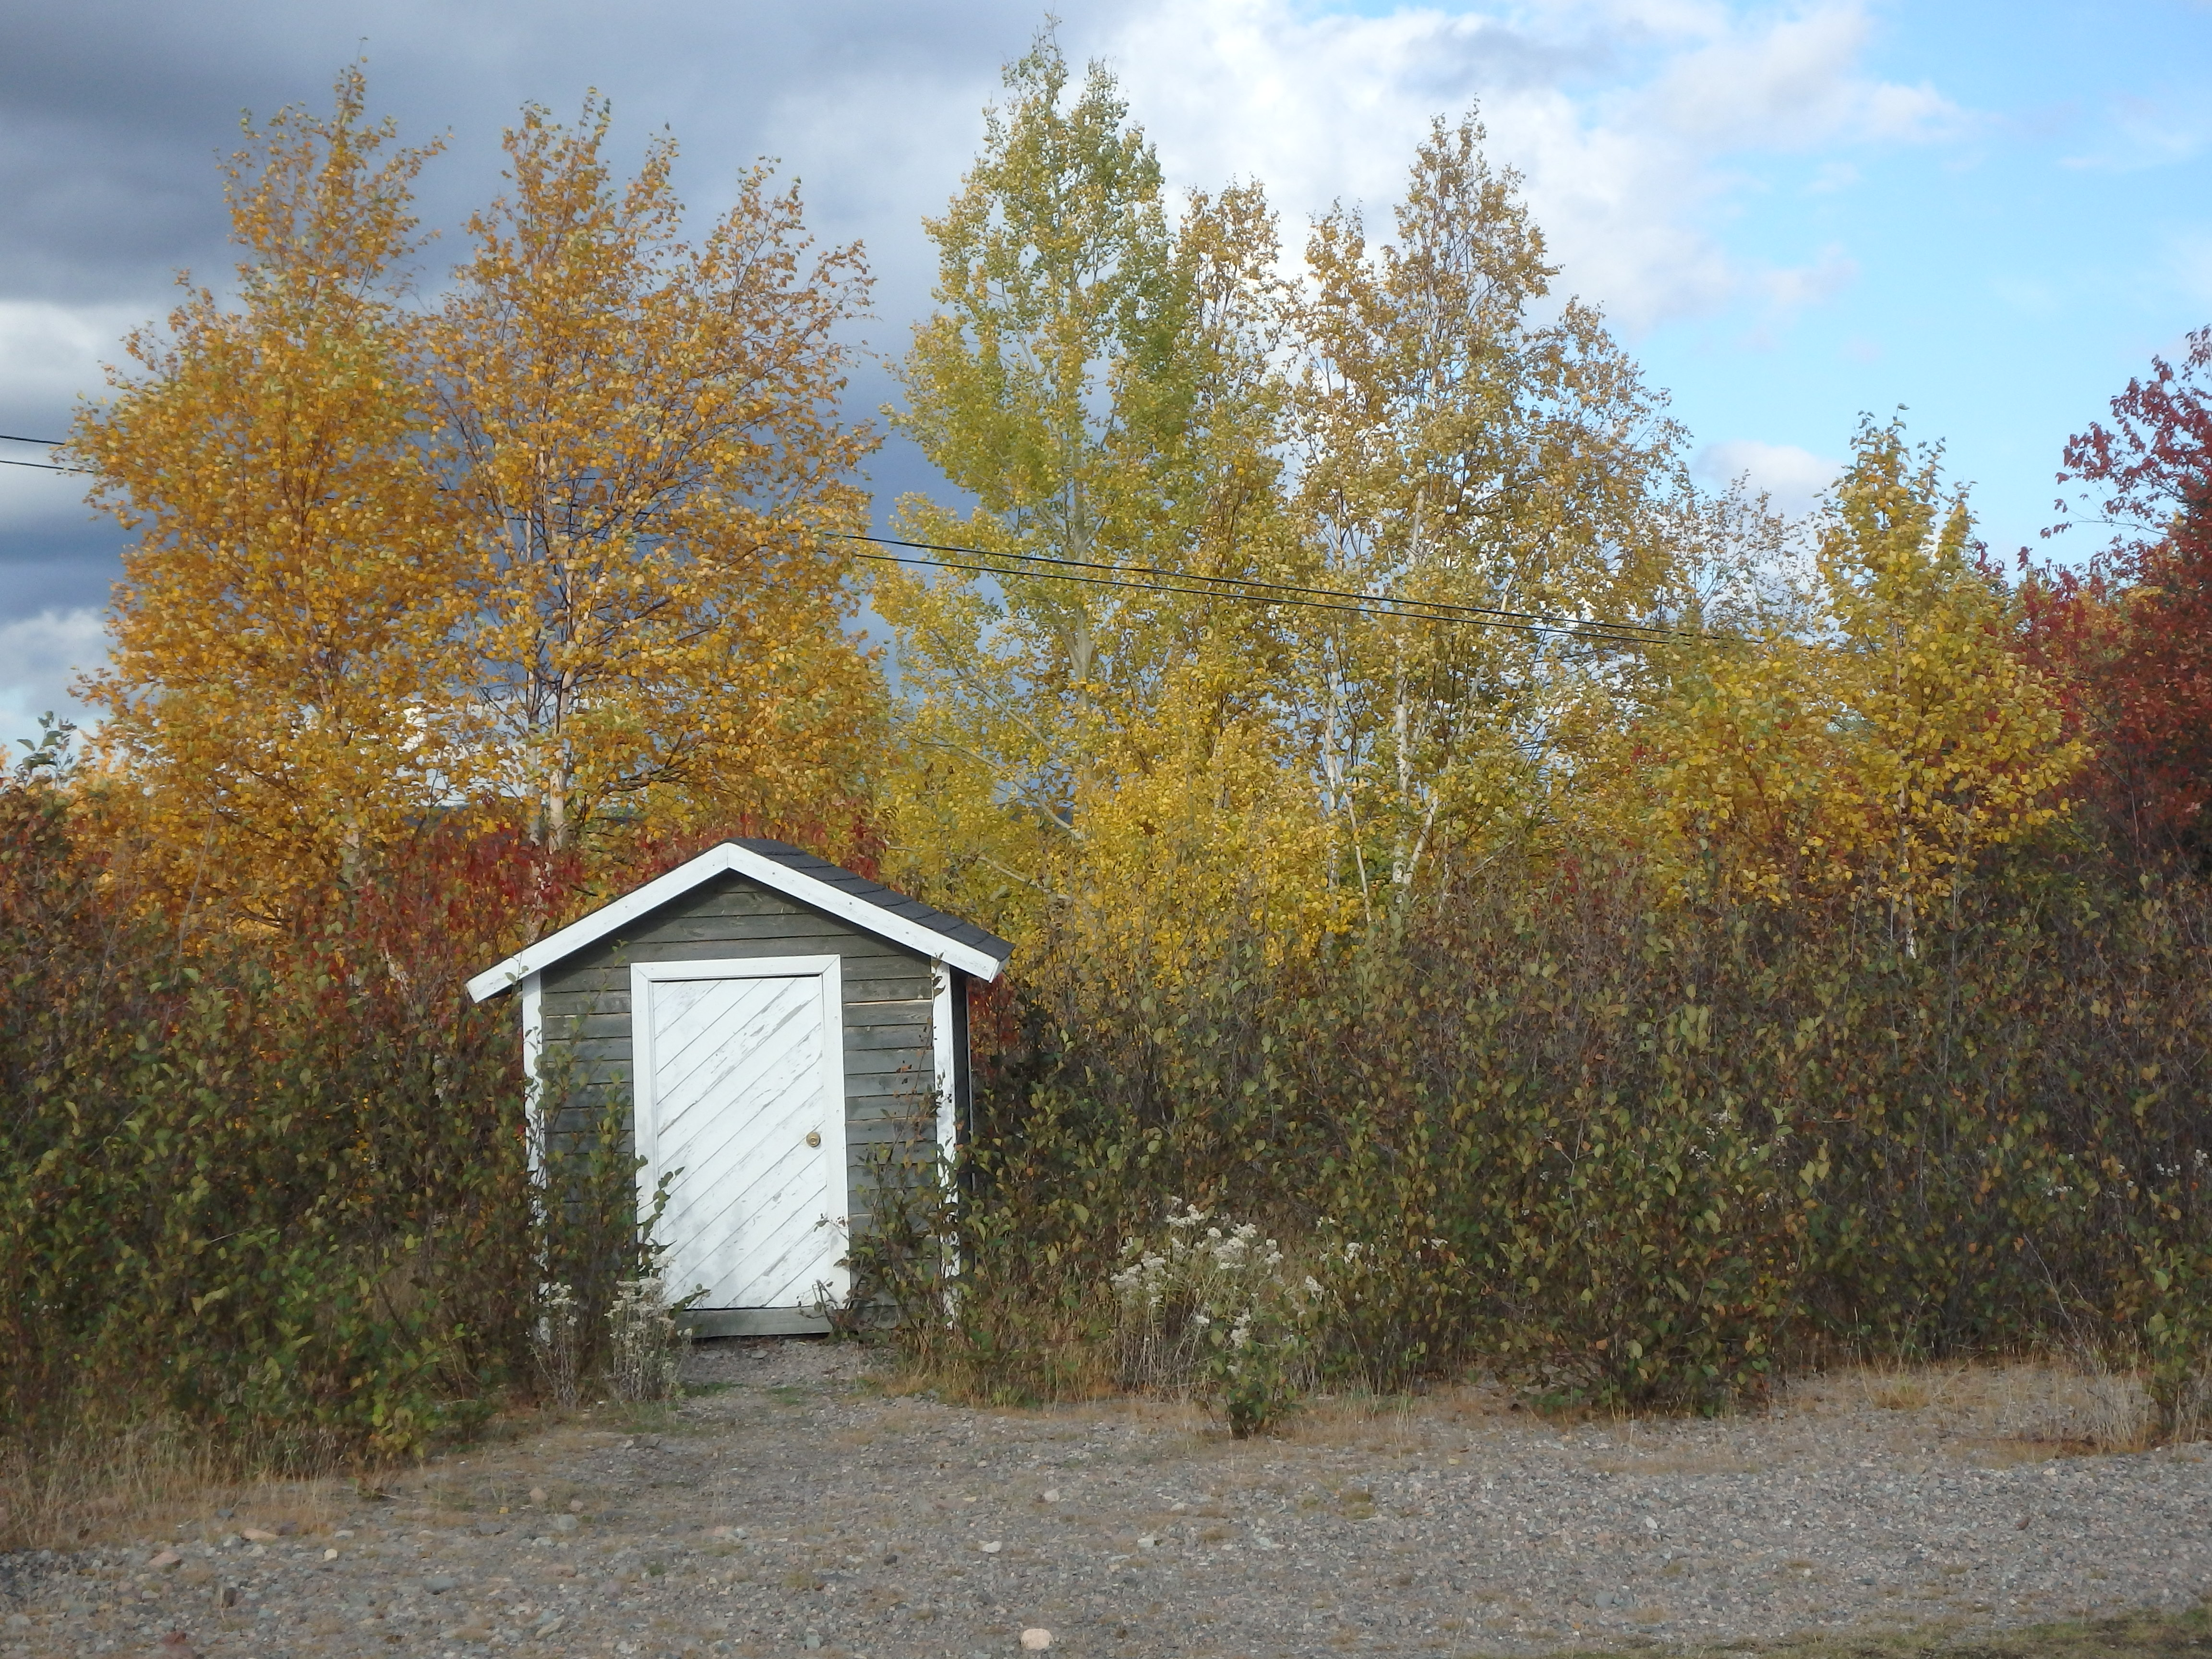 Lonely Shed; Newfoundland, Canada; 2015